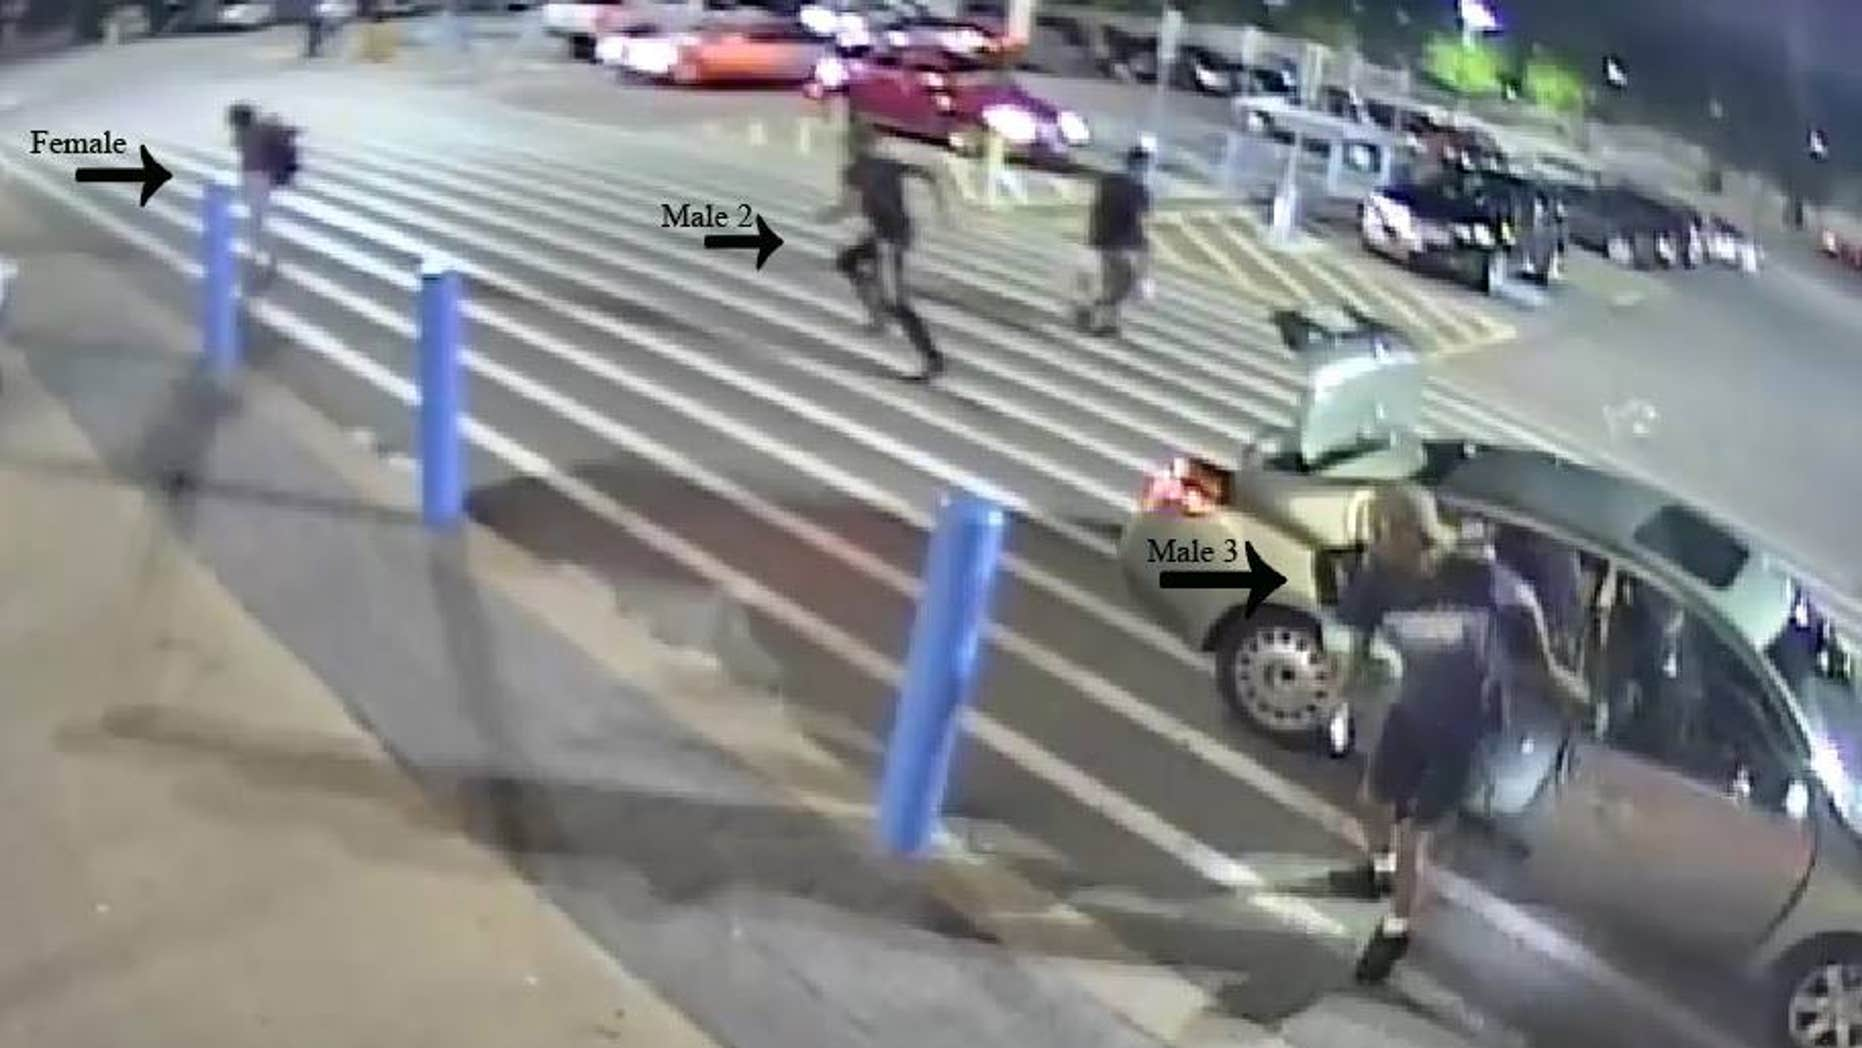 An apparent abduction of a young female outside a Walmart in Chesterfield, Virginia, Sunday night was a planned hoax, police said Tuesday.